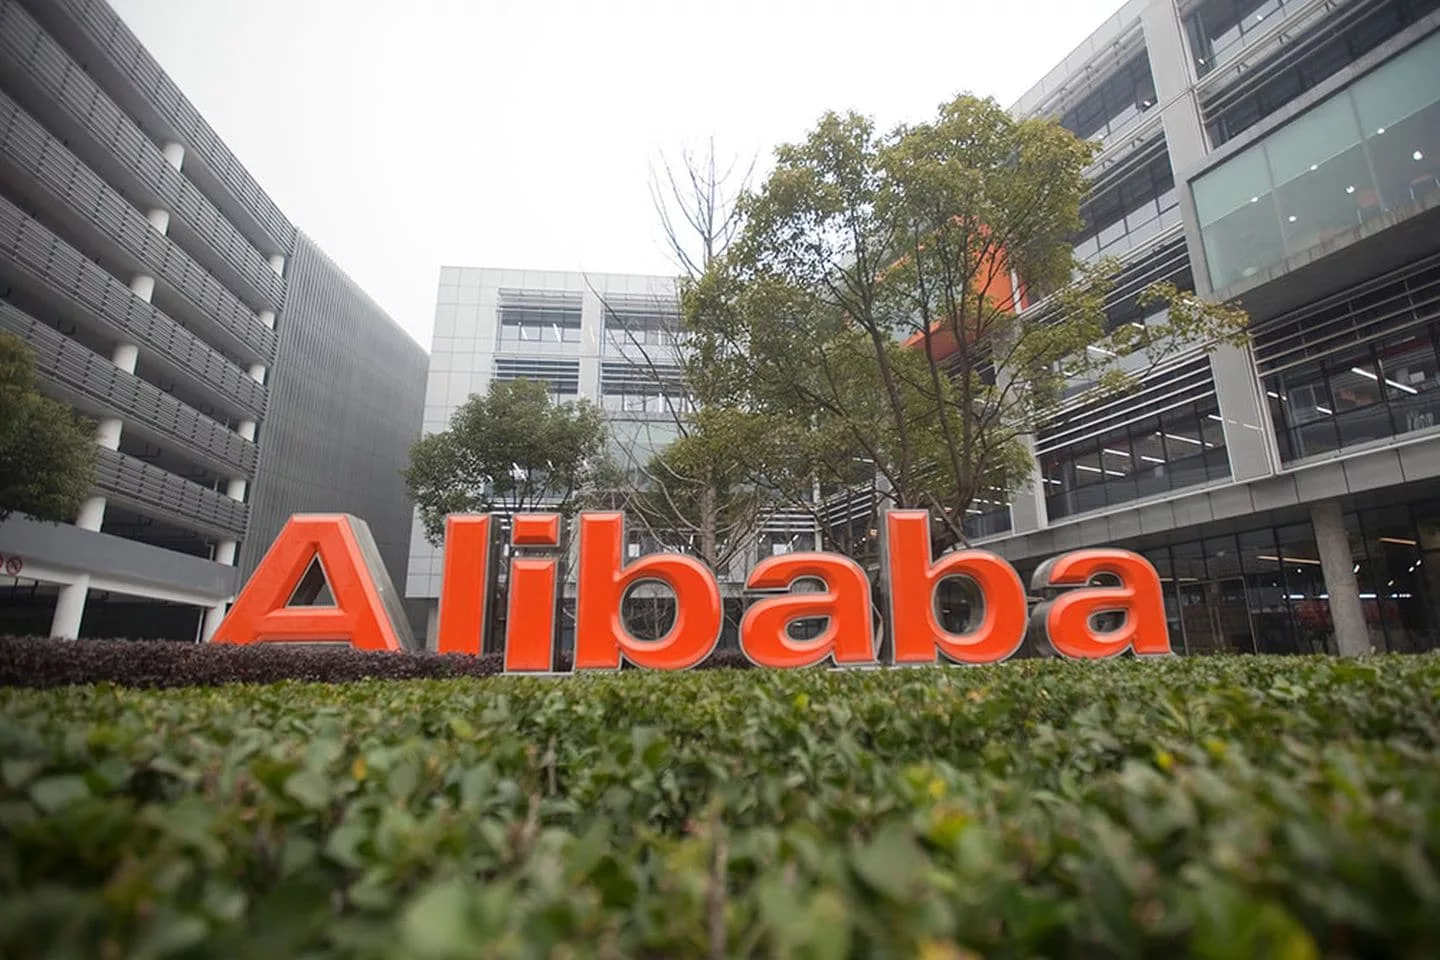 Alibaba will acquire part of the shares during the IPO of the Ant Group